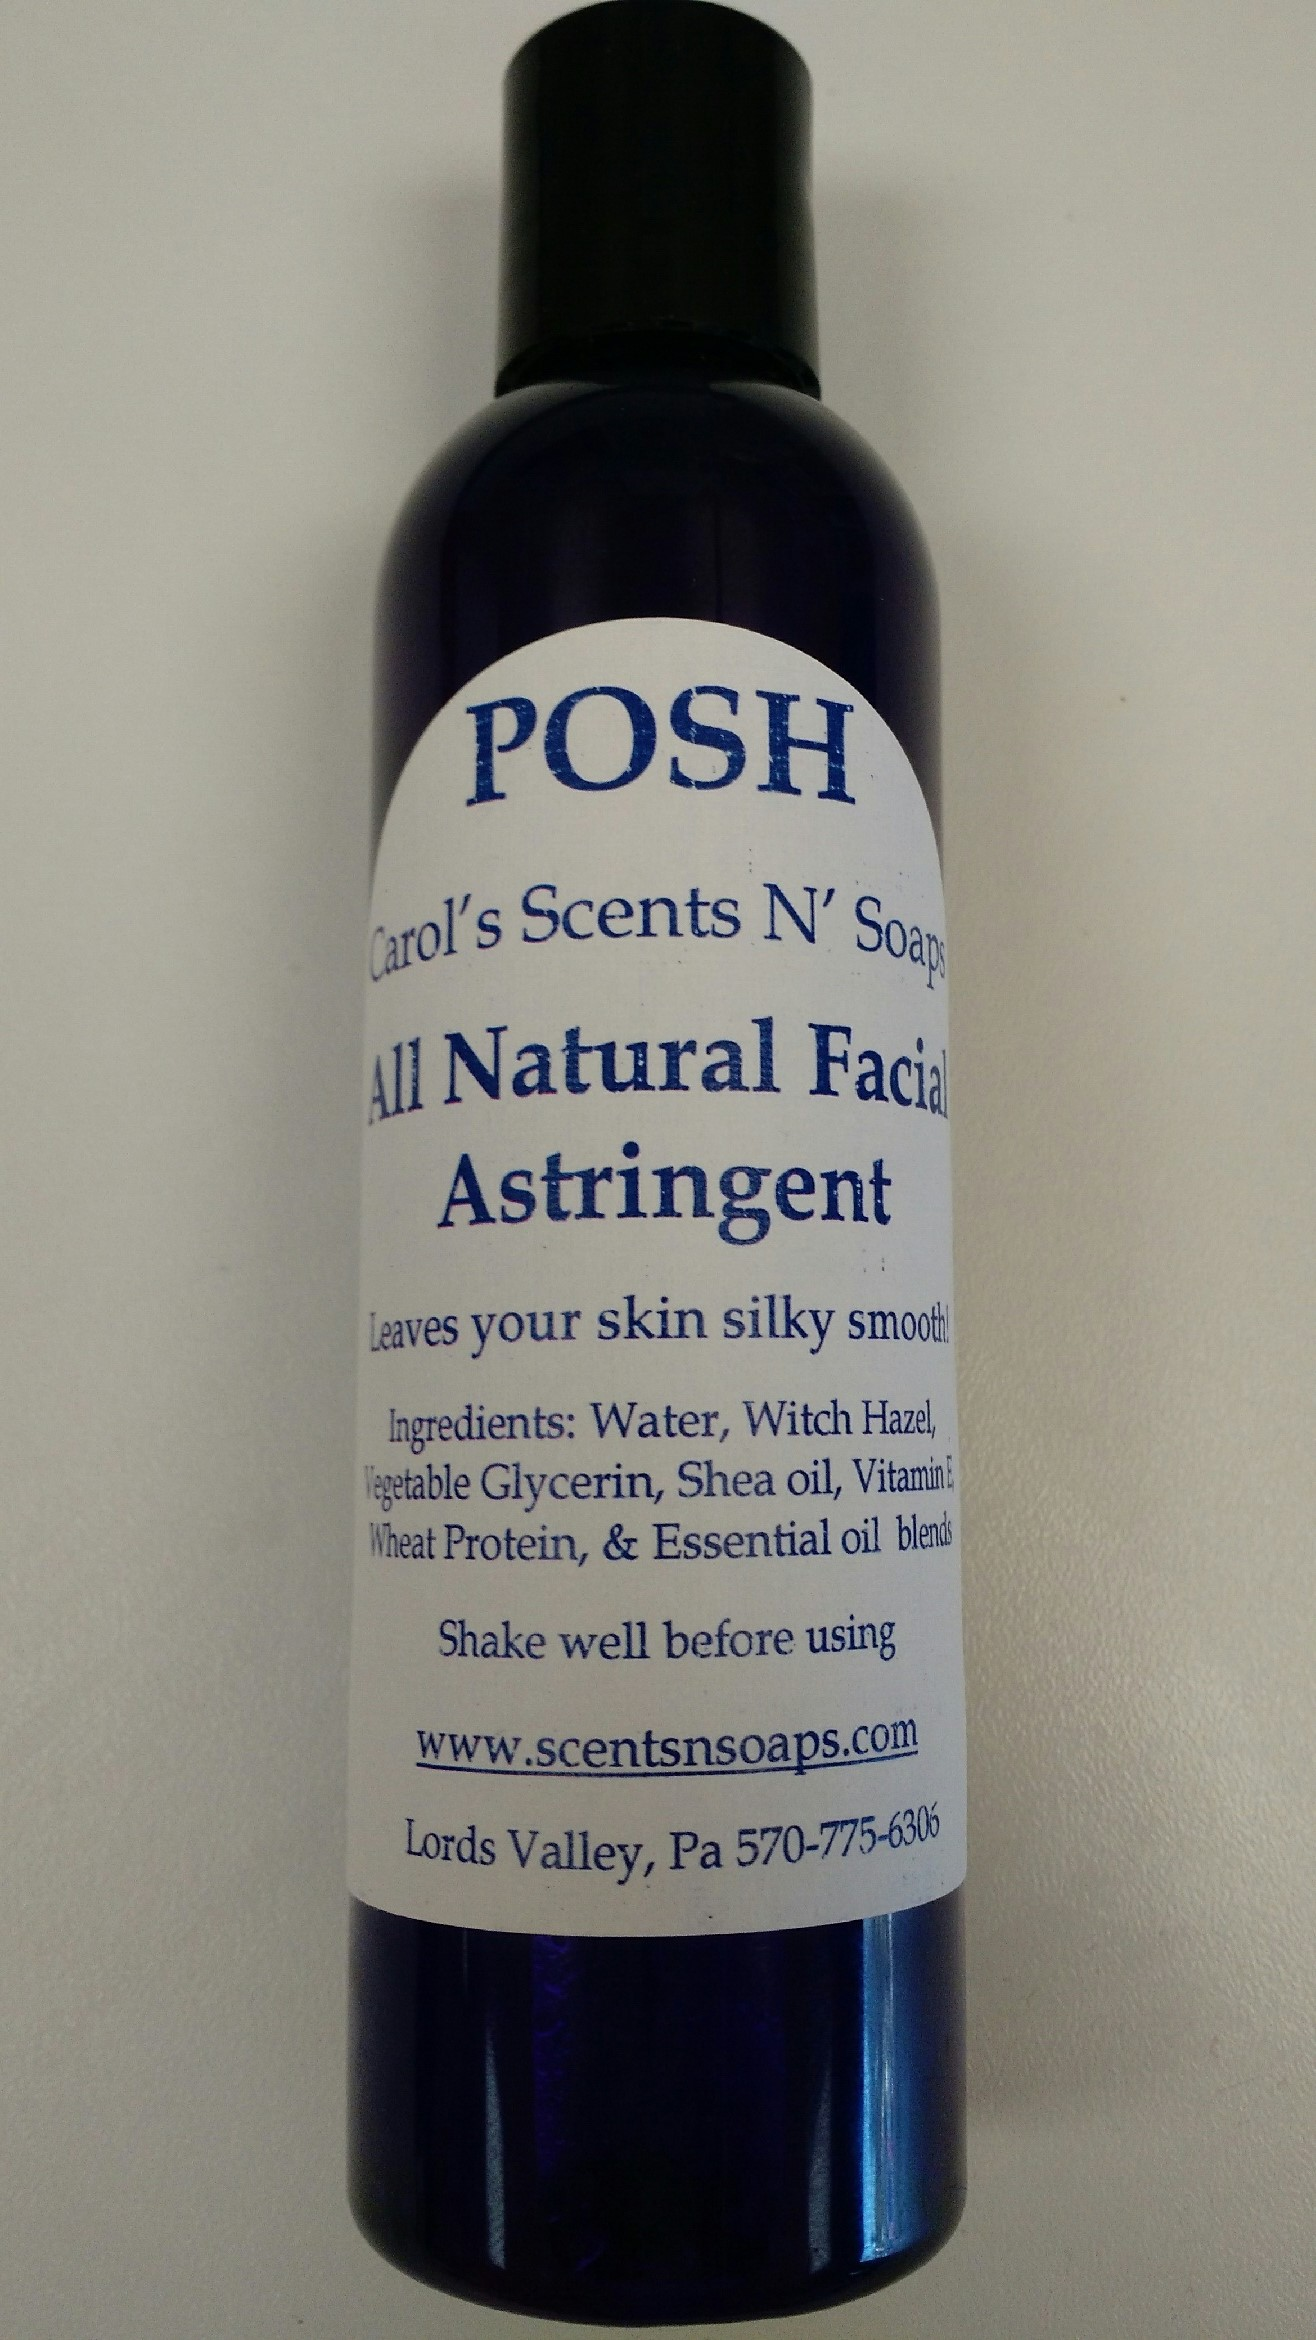 Natural Facial Astringent